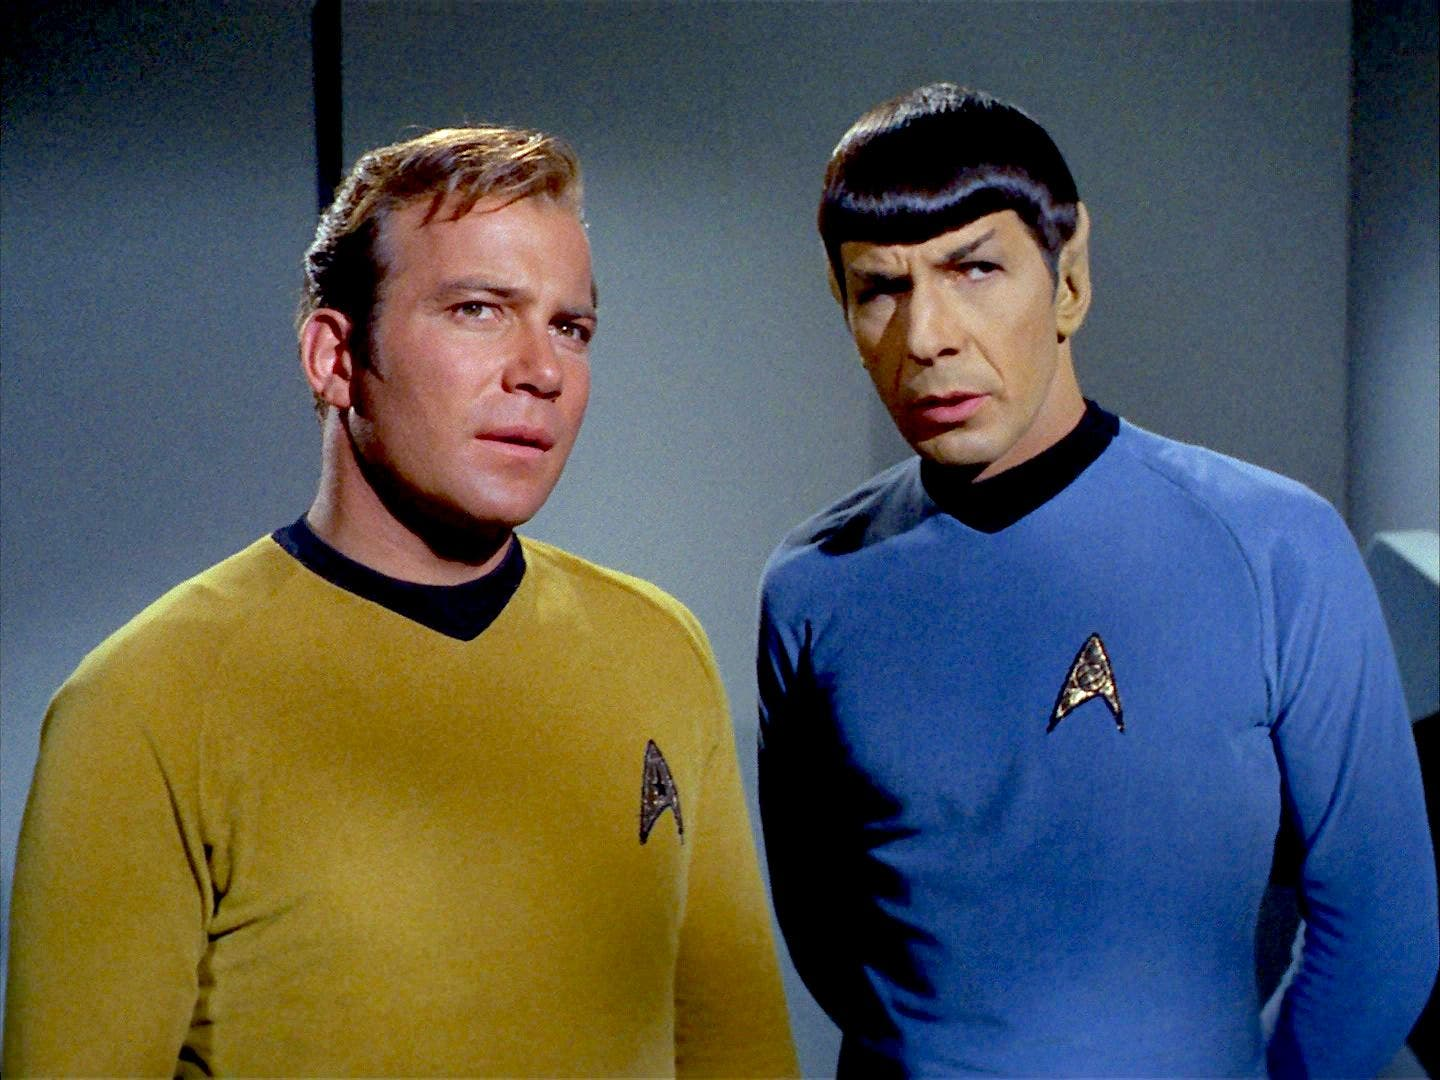 Jonathan Holdaway Captain Kirk And Spock 1